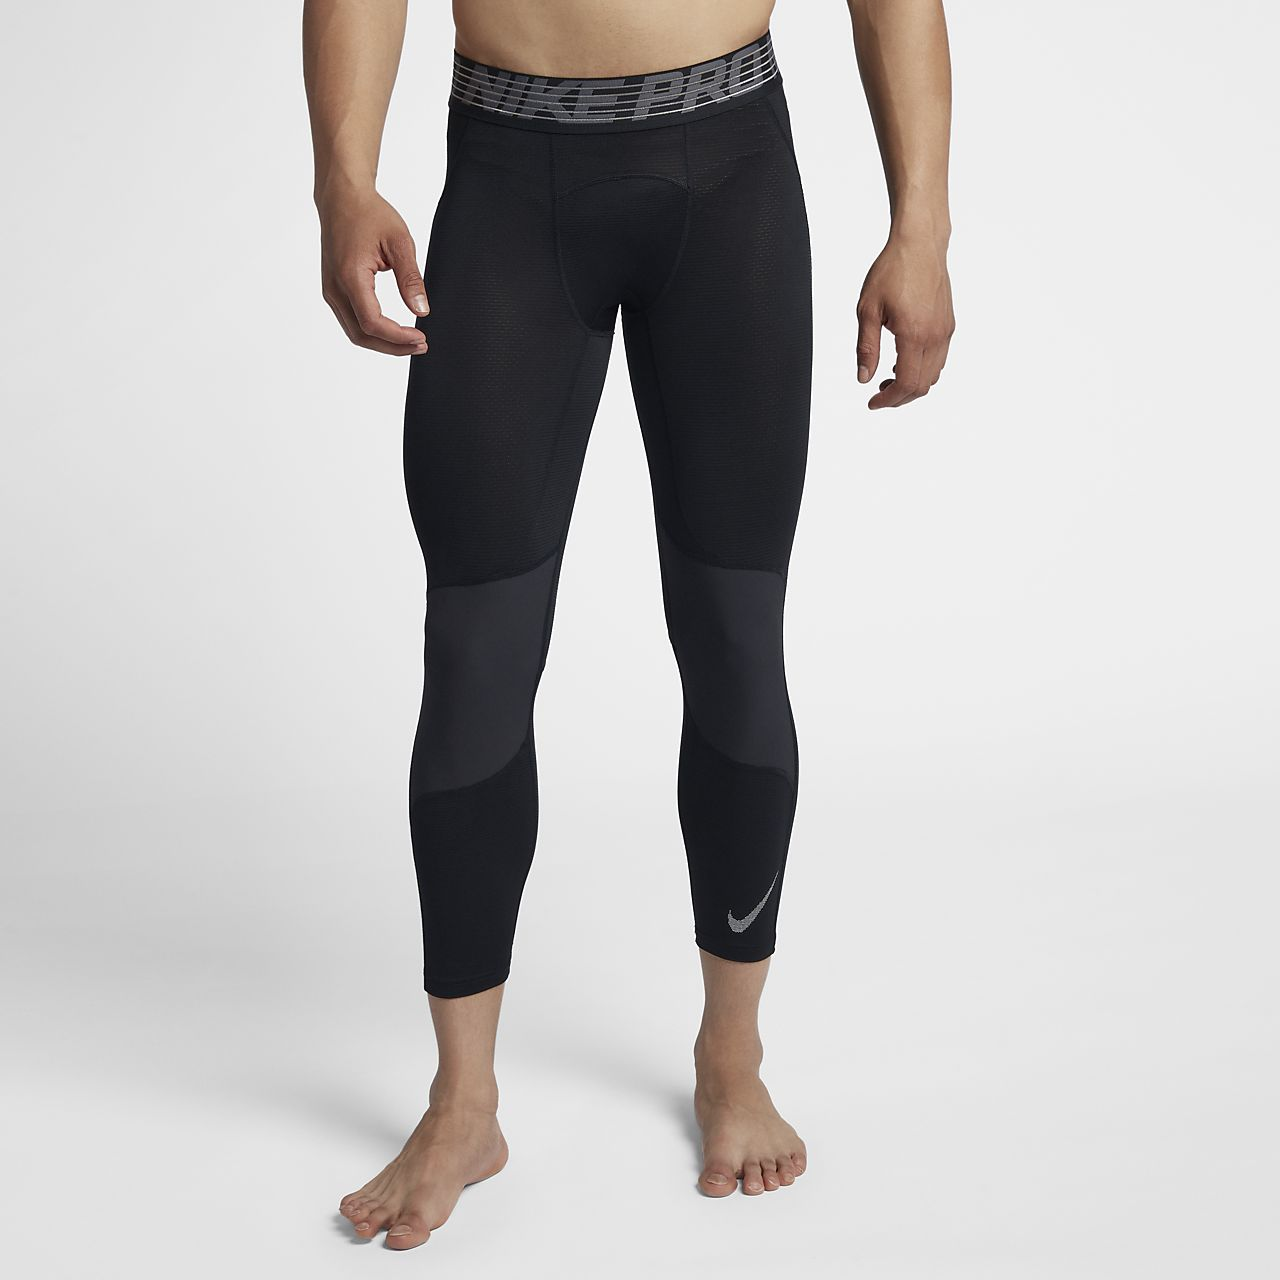 Nike Pro HyperCool Men's 3/4 Basketball Tights